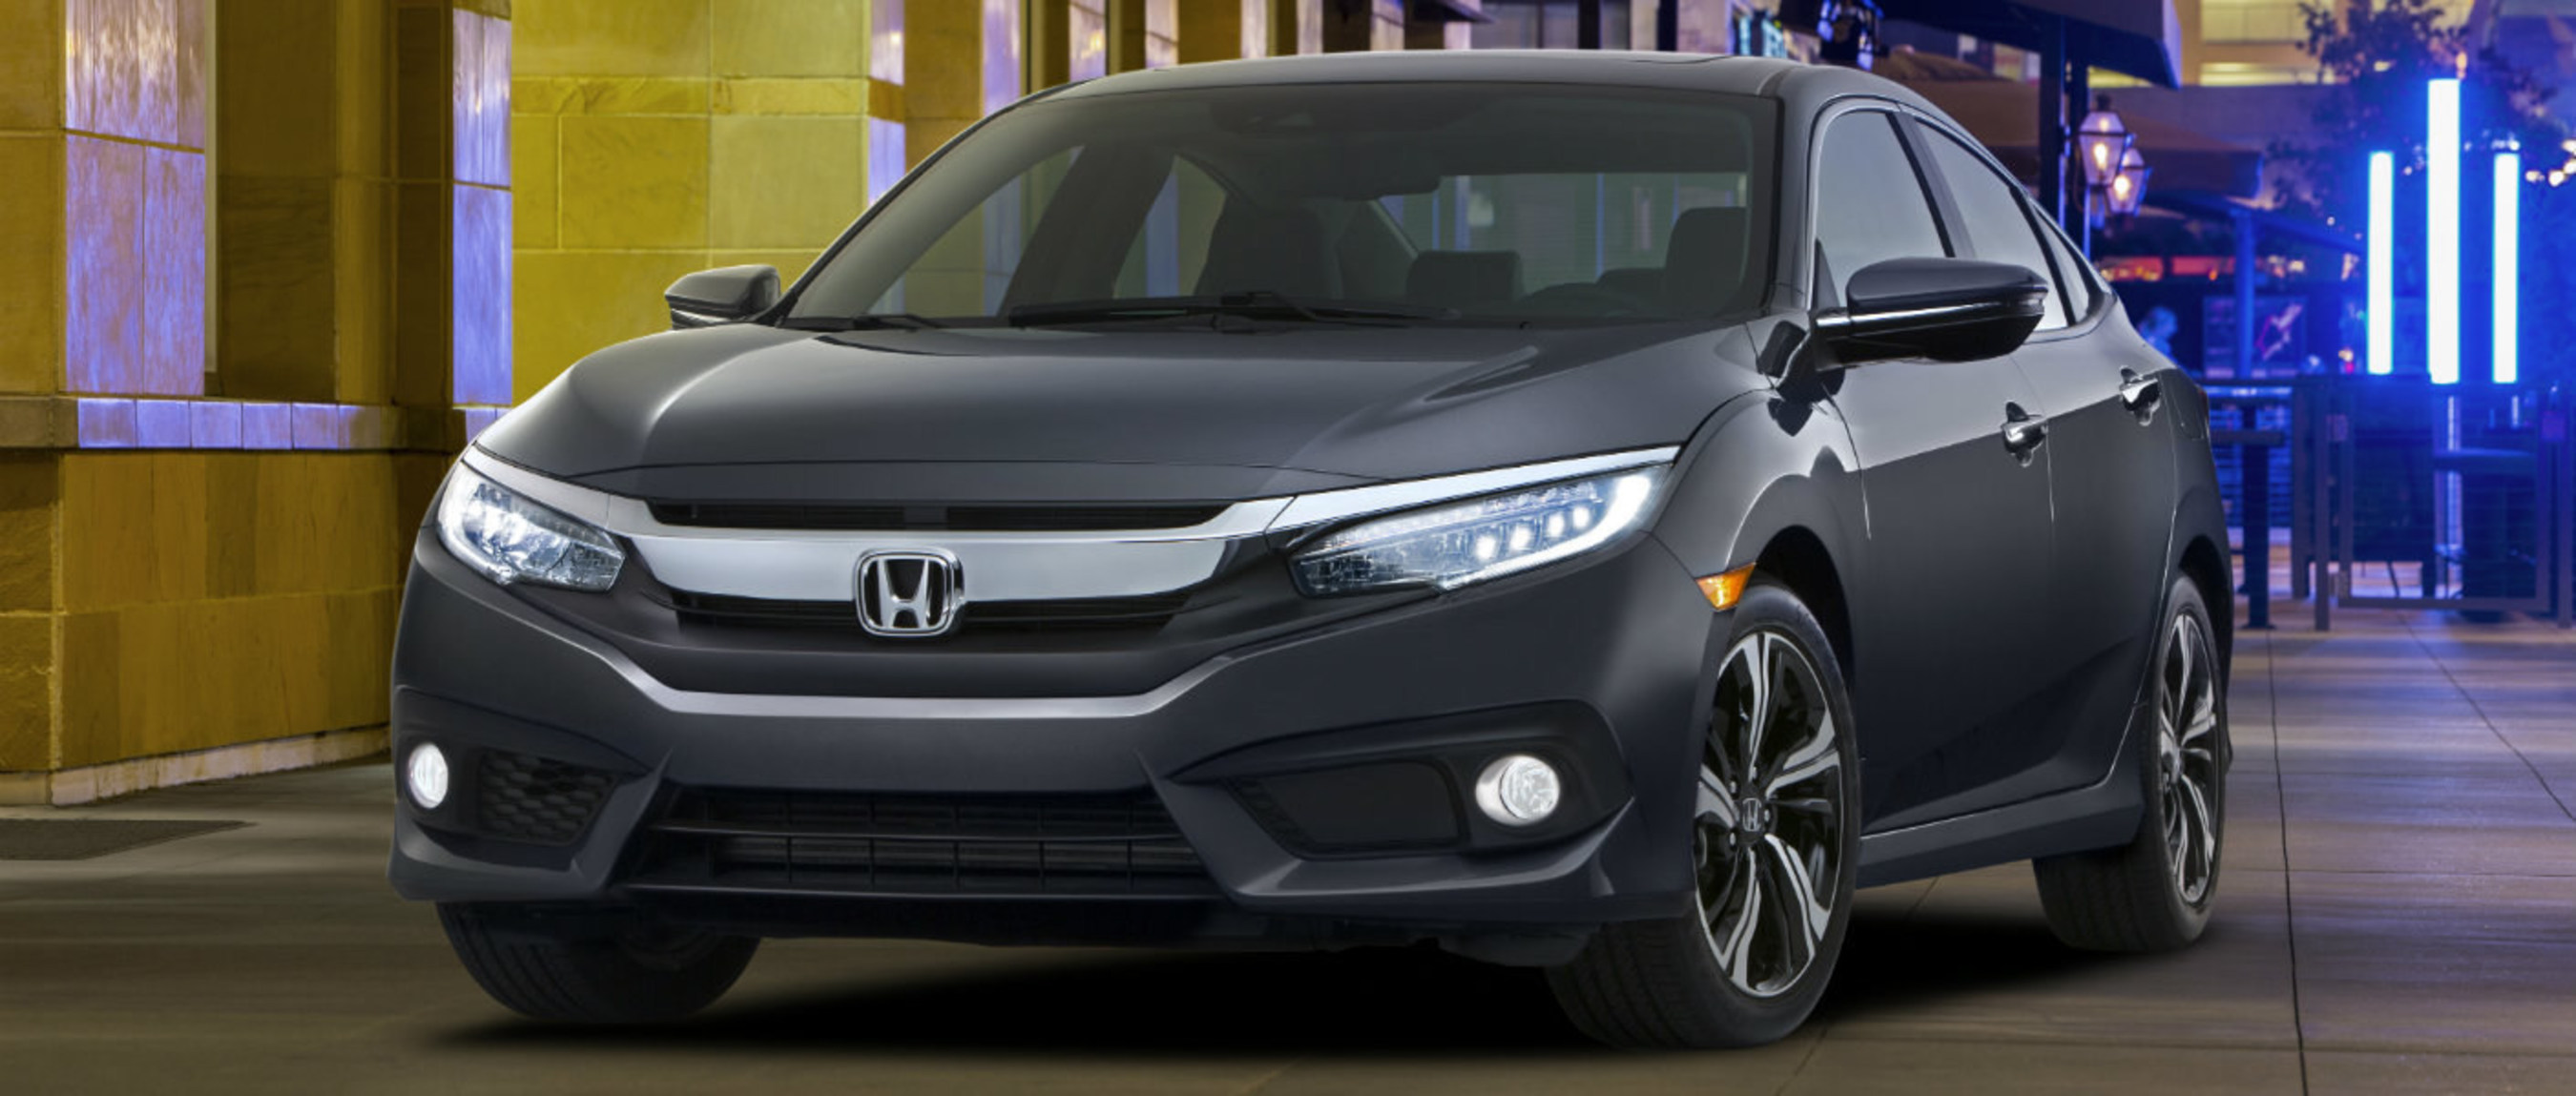 Highly-anticipated 2016 Honda Civic now available at Edmonton dealership